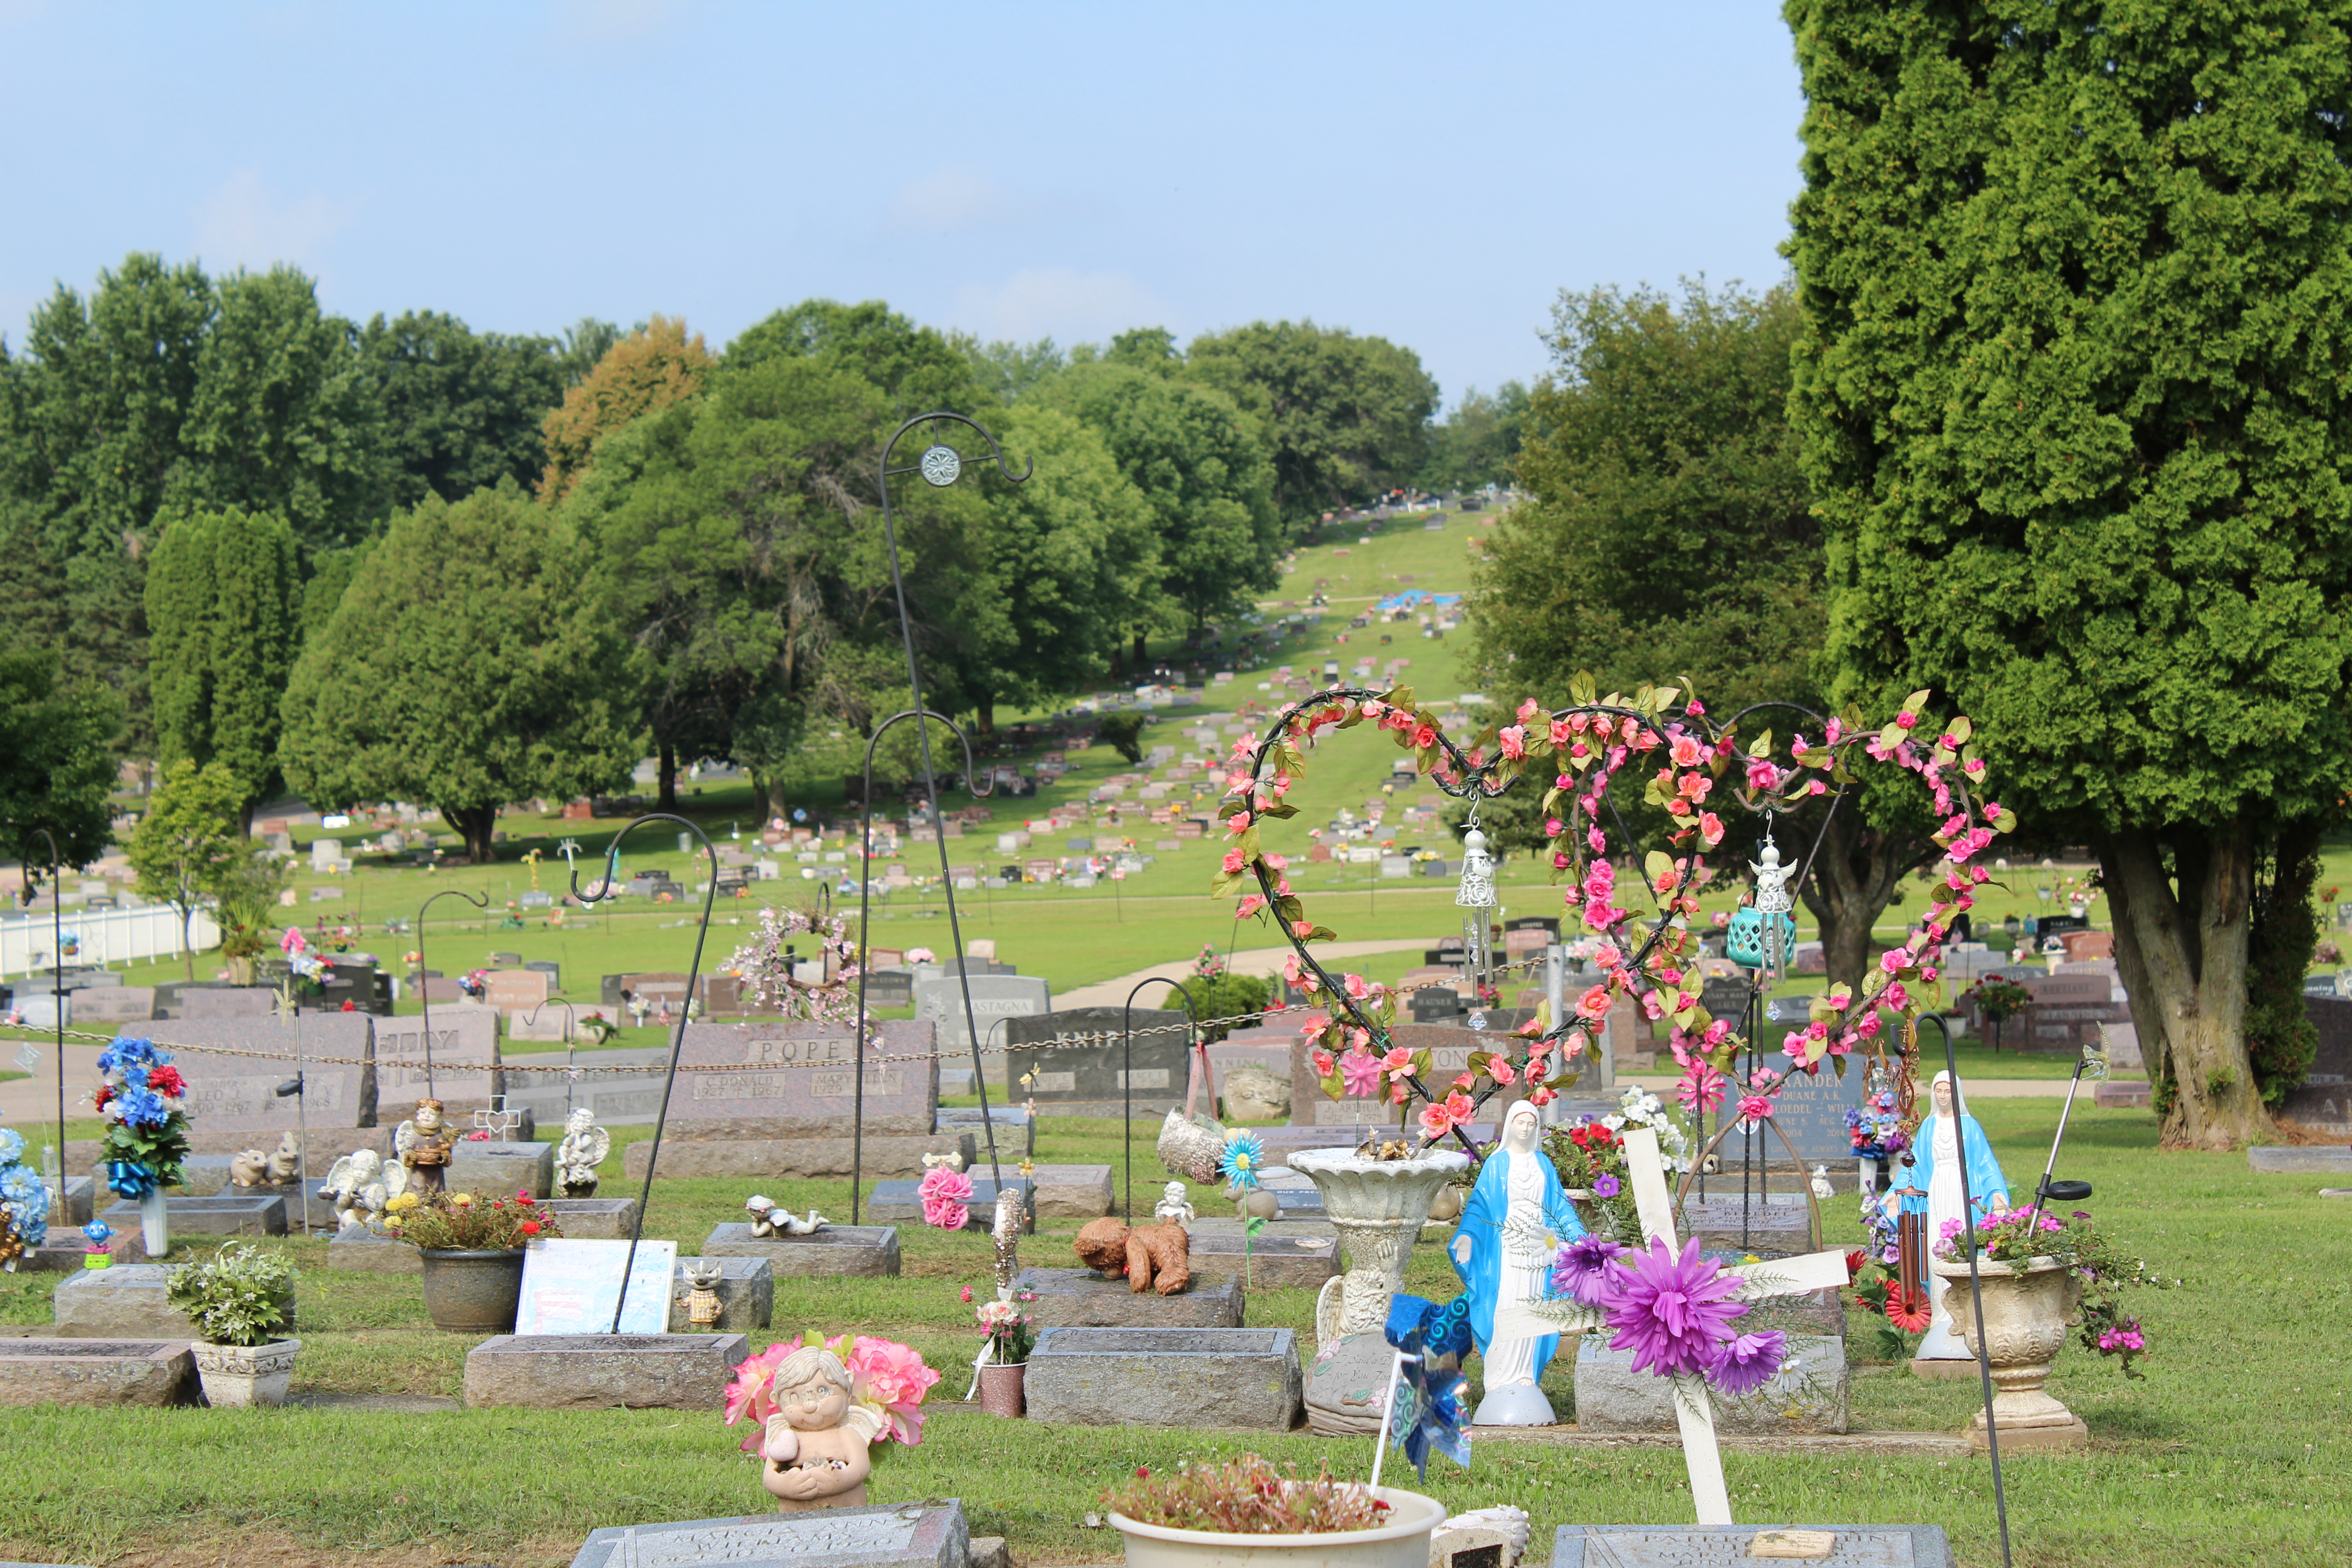 The cemetery is large and very hilly so guests are encouraged to wear sturdy, walking shoes!